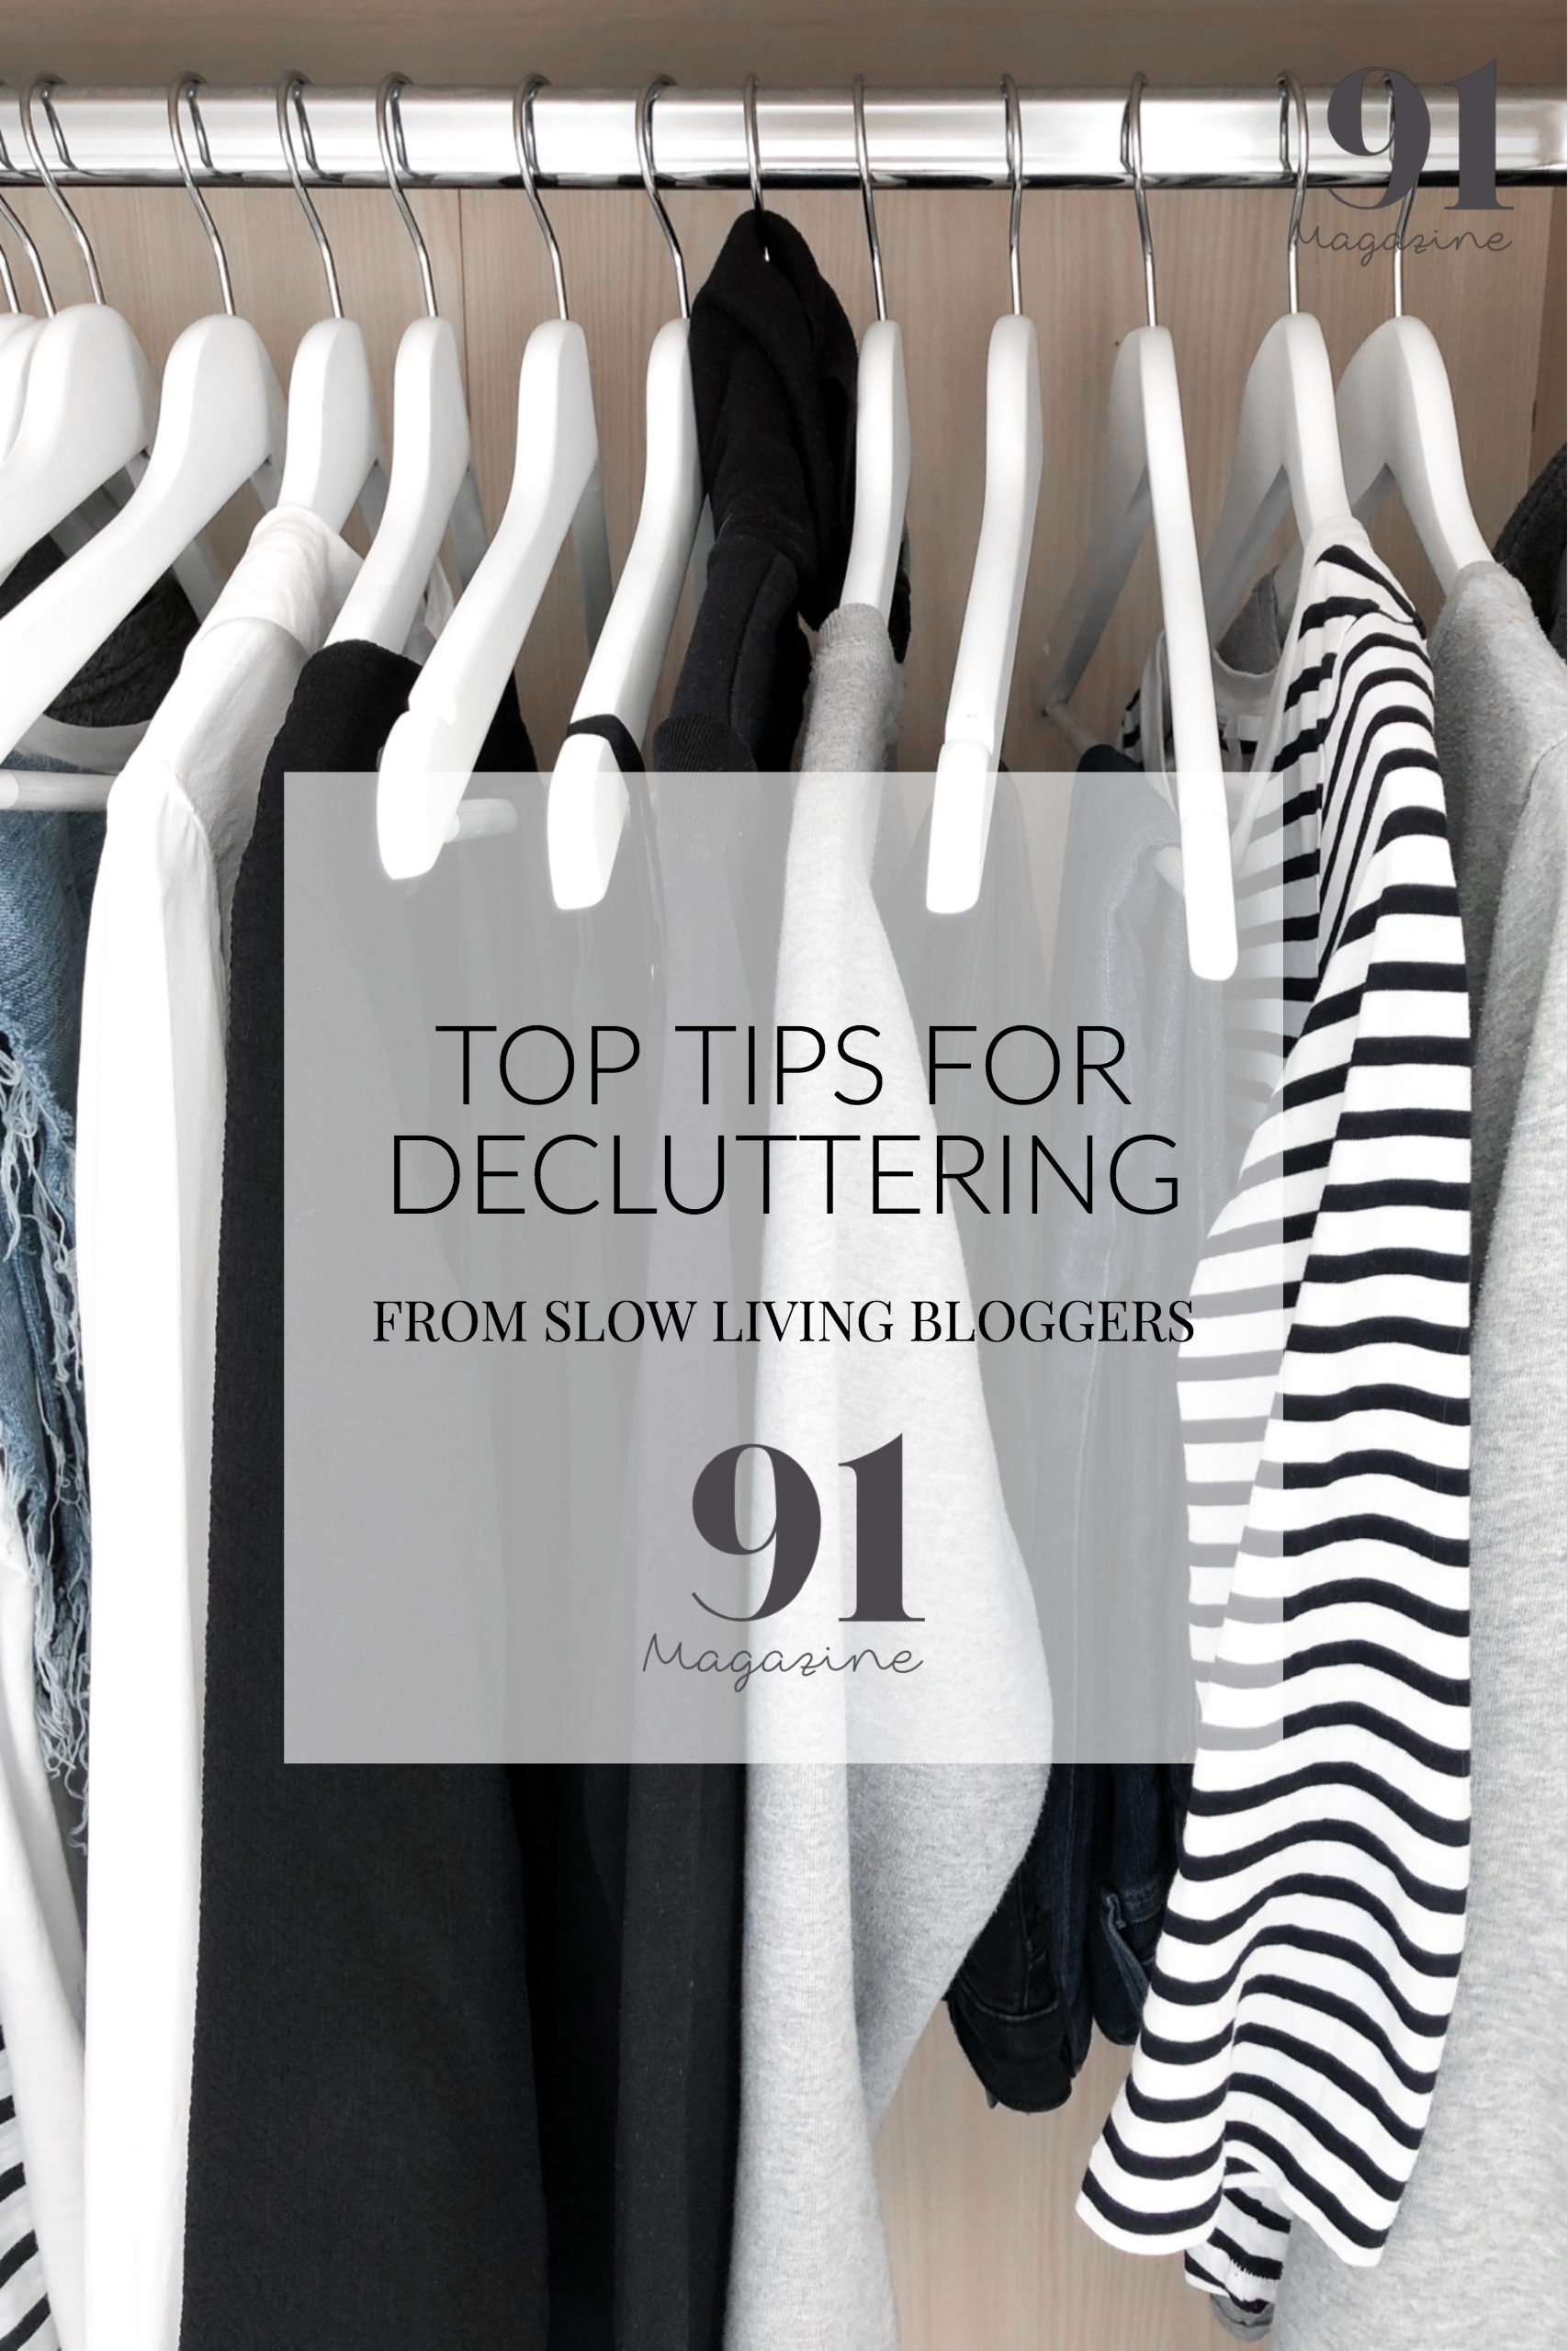 TOP TIPS FOR DECLUTTERING YOUR HOME